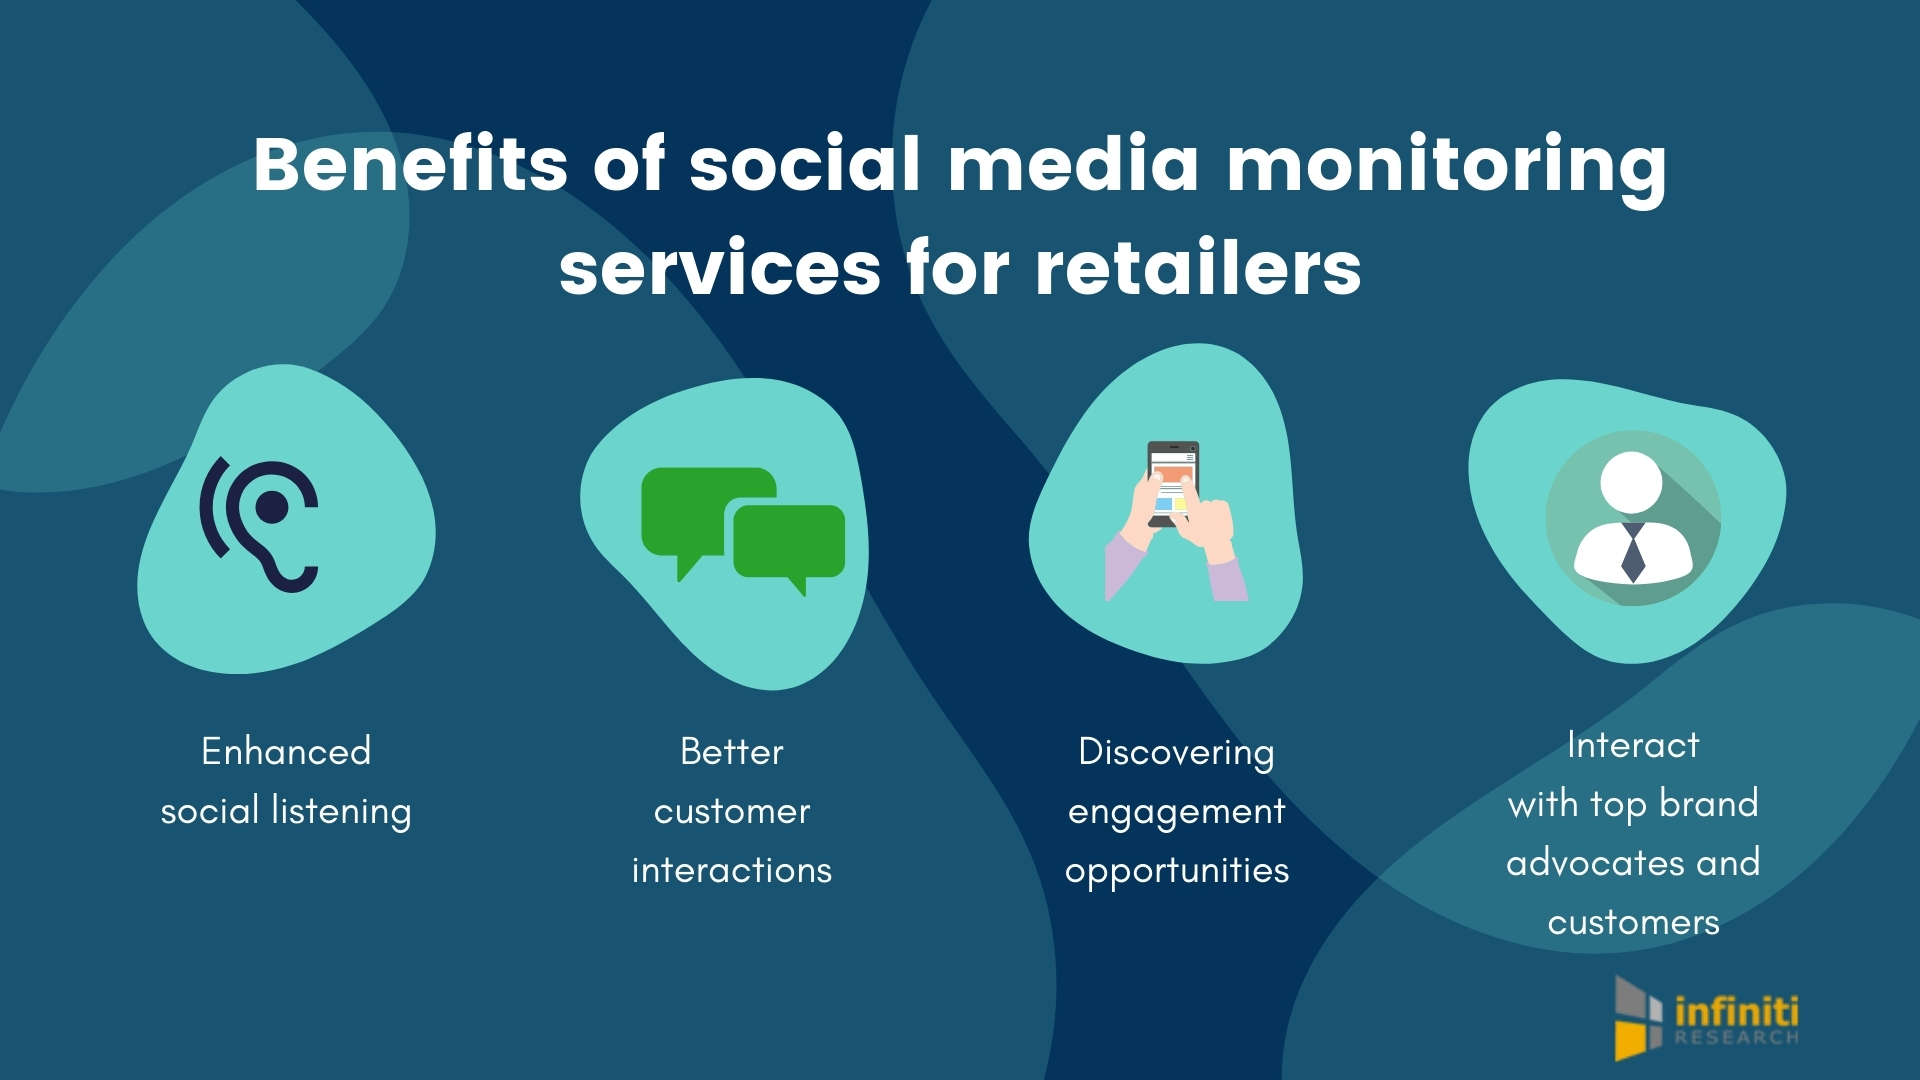 Benefits Of Using Social Media Monitoring In Retail Experts At Infiniti Explain Why Every Retailer Must Leverage Social Media Monitoring Services Business Wire